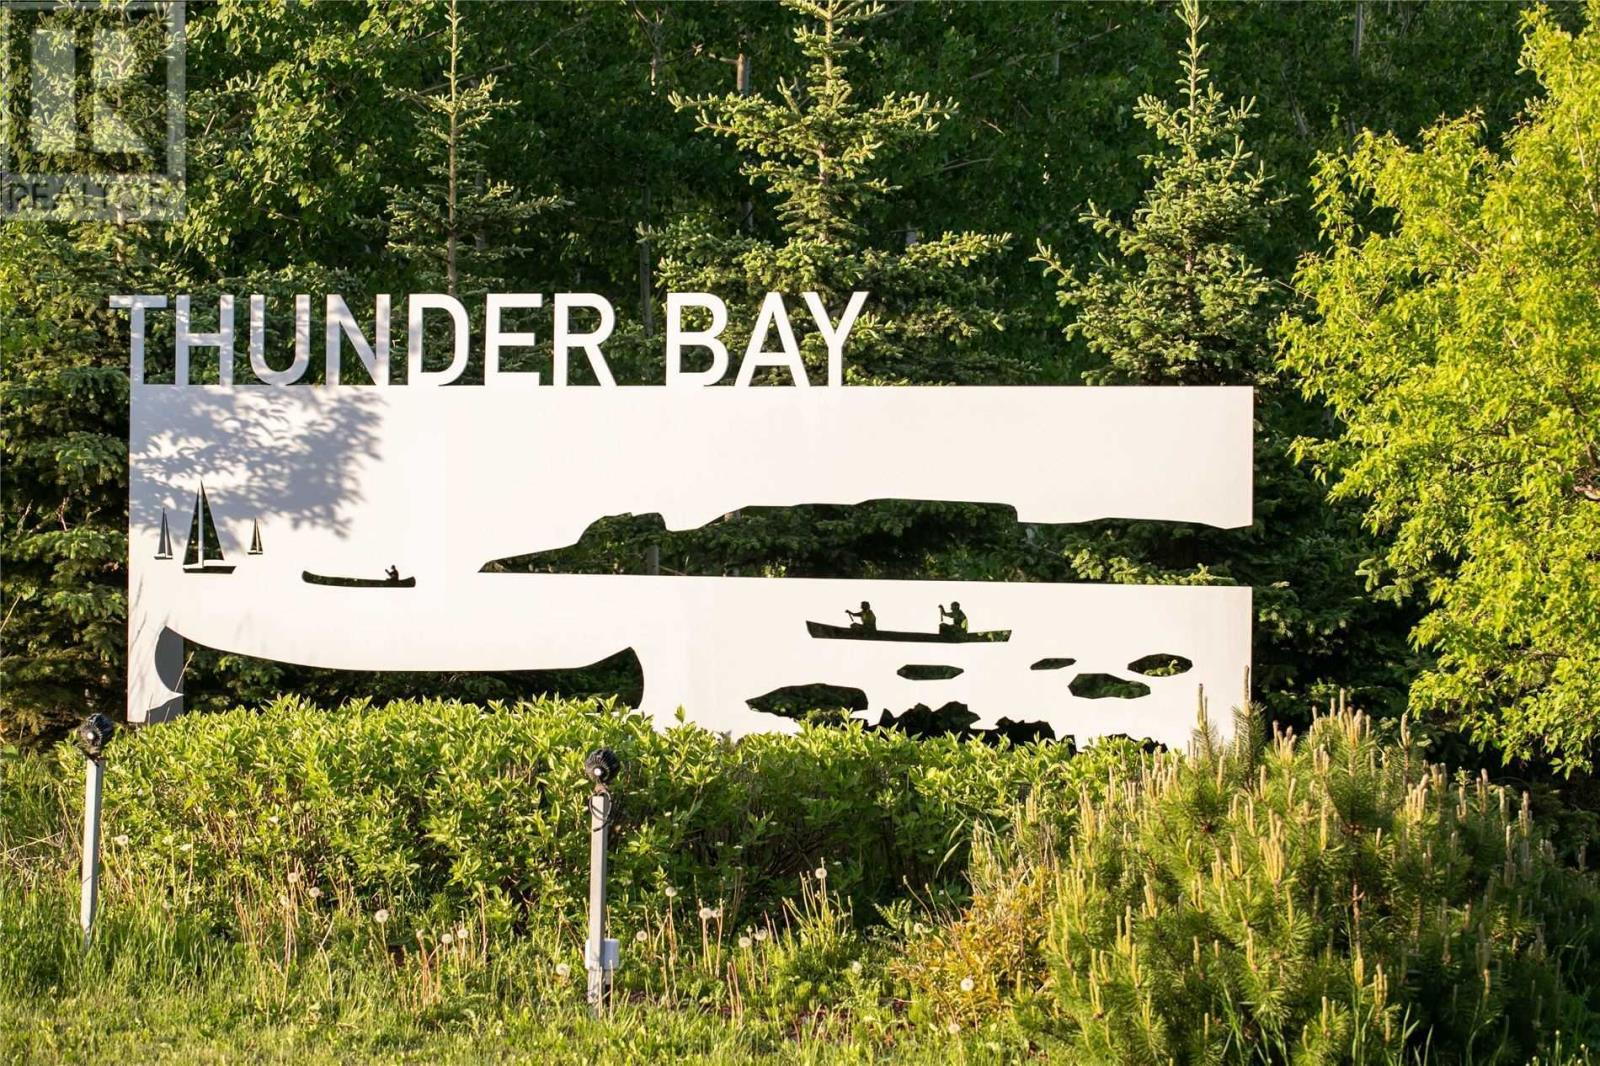 residential property for For sale at Oliver Paipoonge, Ontario